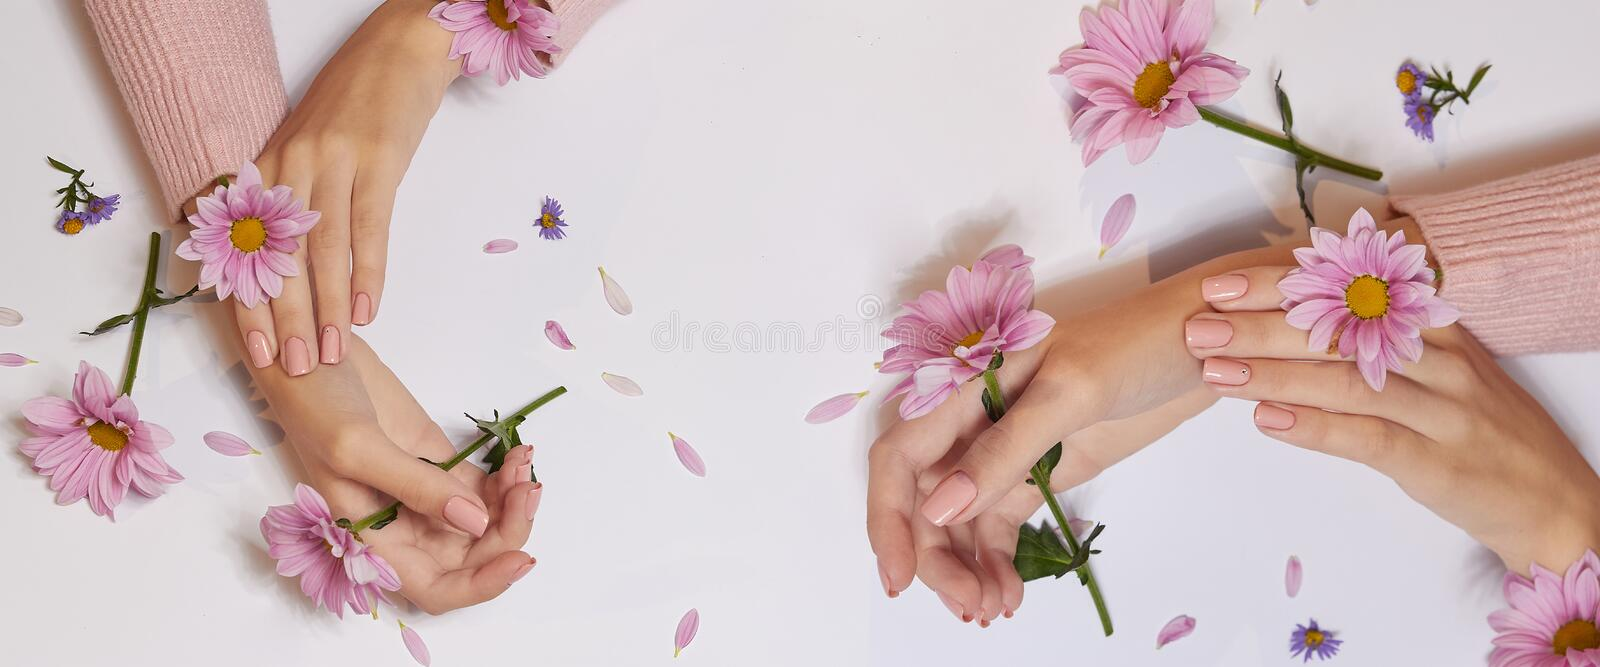 Fashion art skin care of hands and pink flowers in hands of women.  stock images